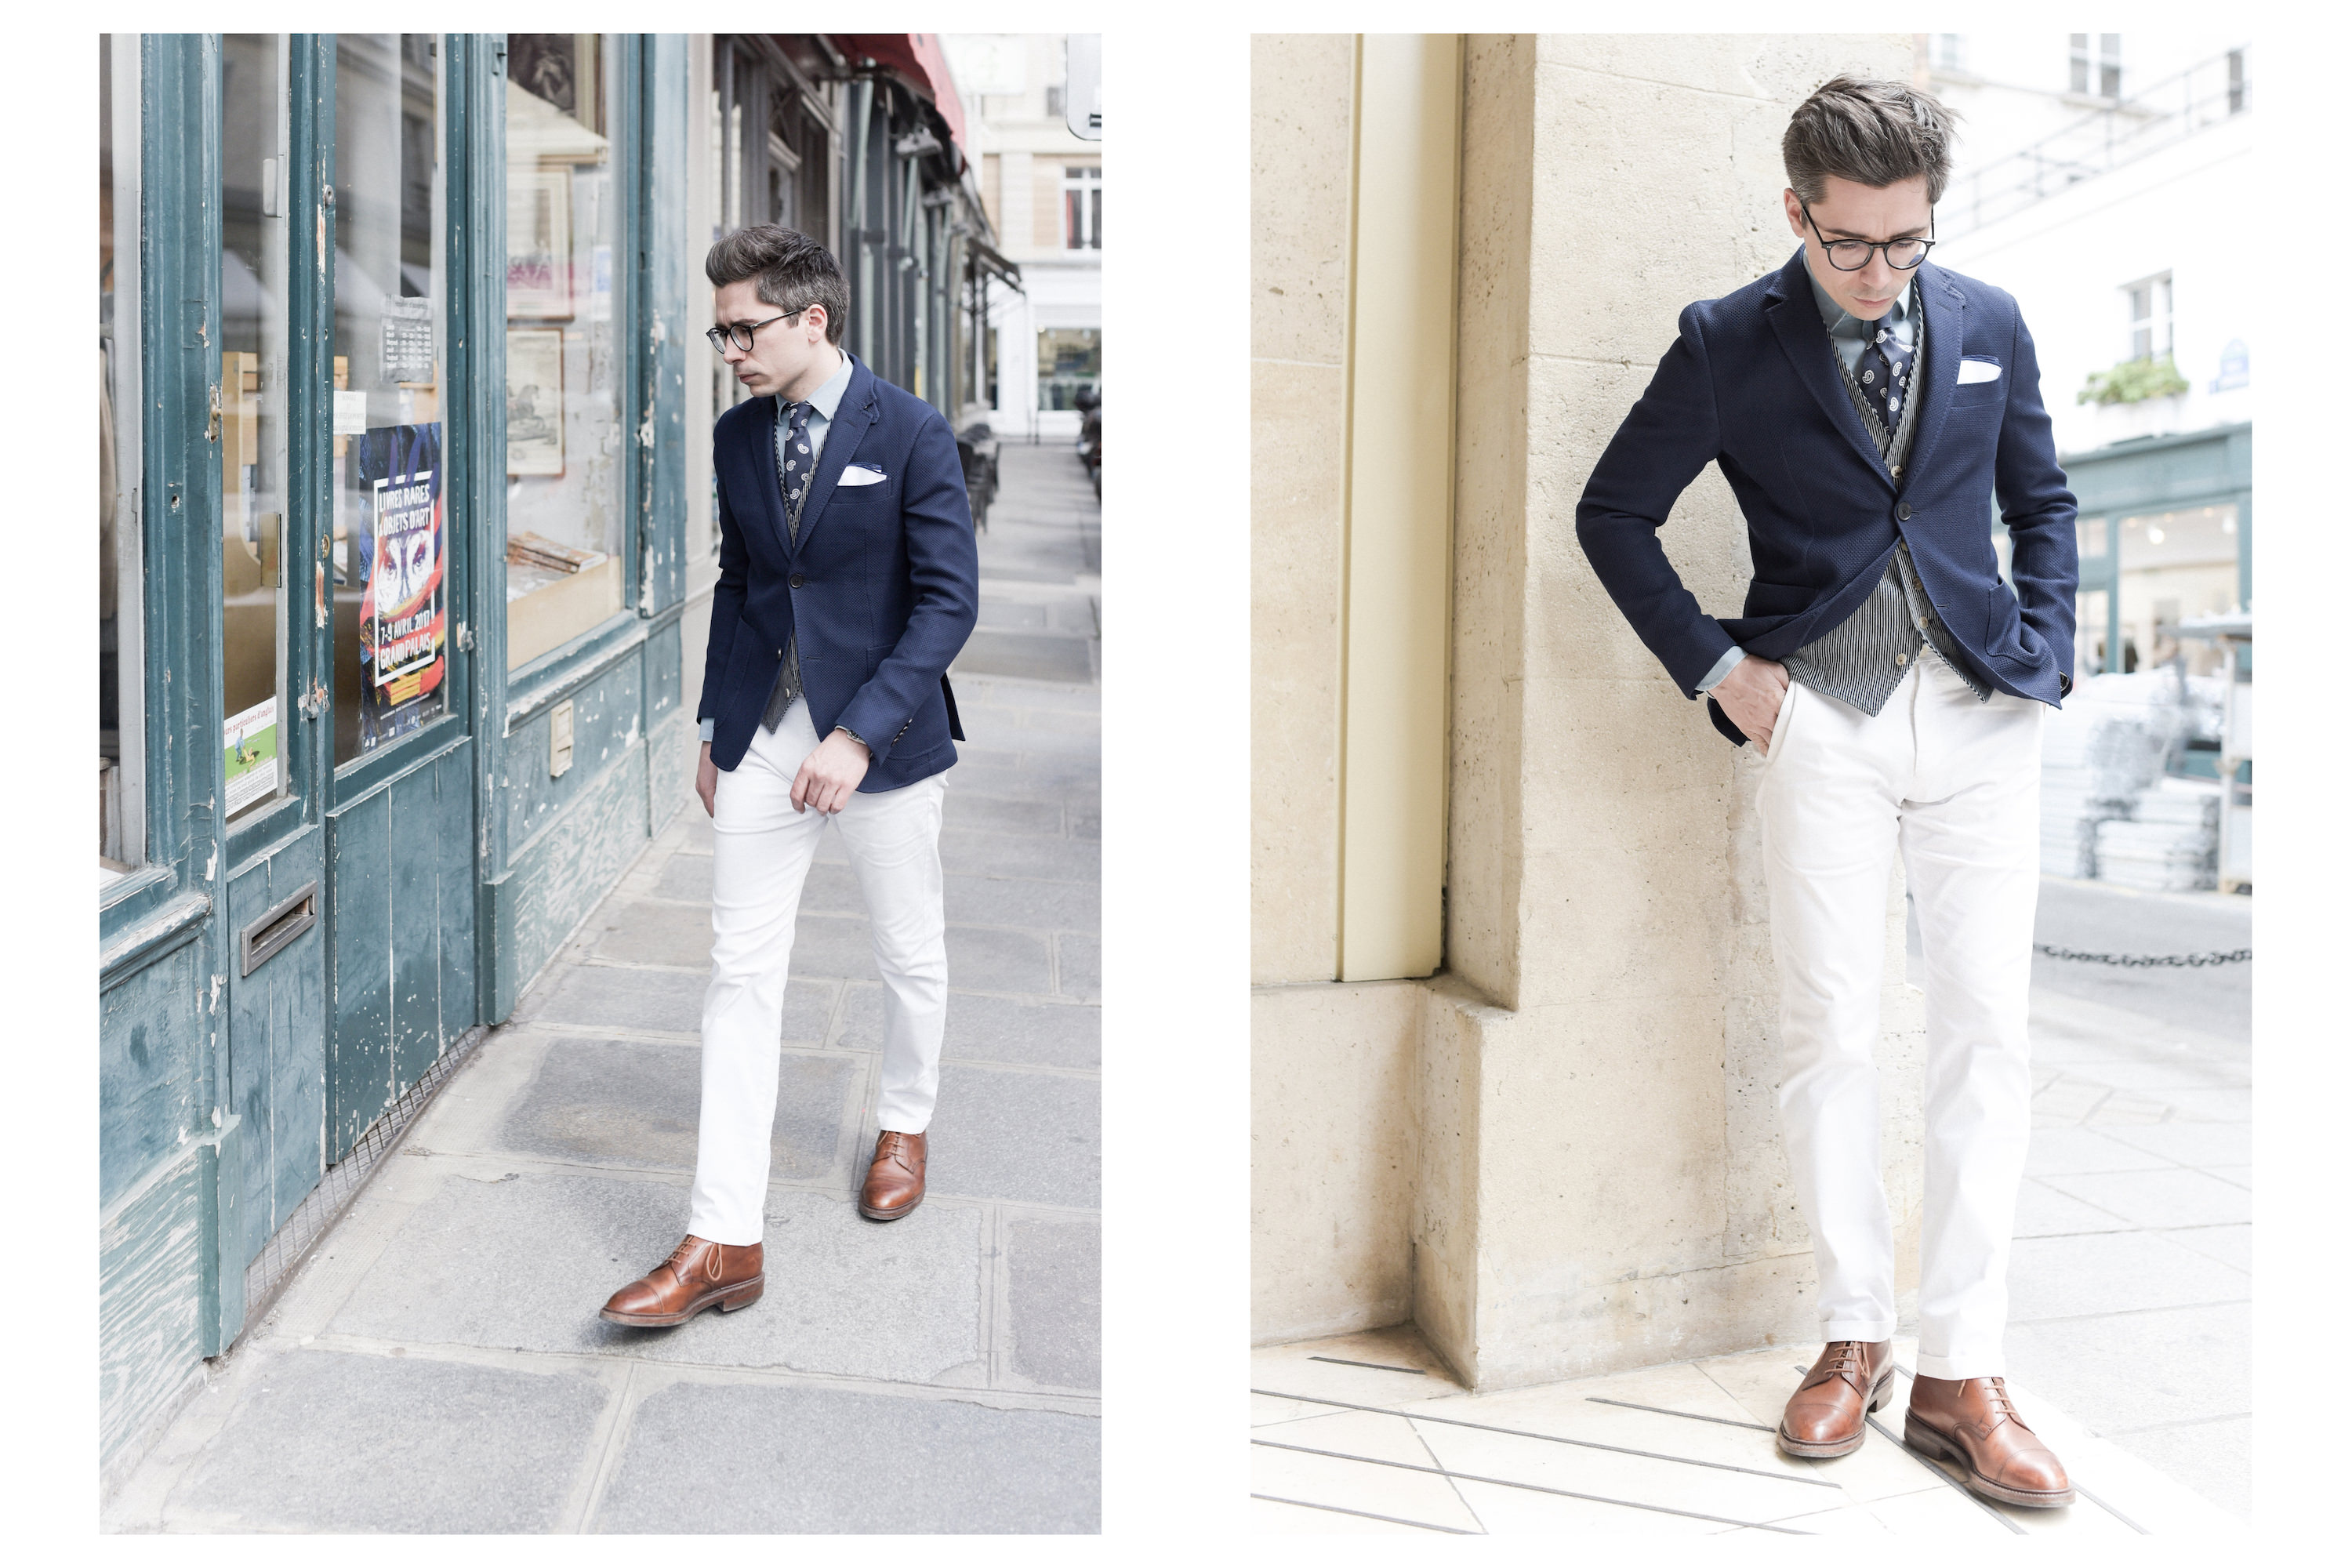 Tenue avec pantalon blanc fashion designs for Tenue interieur homme